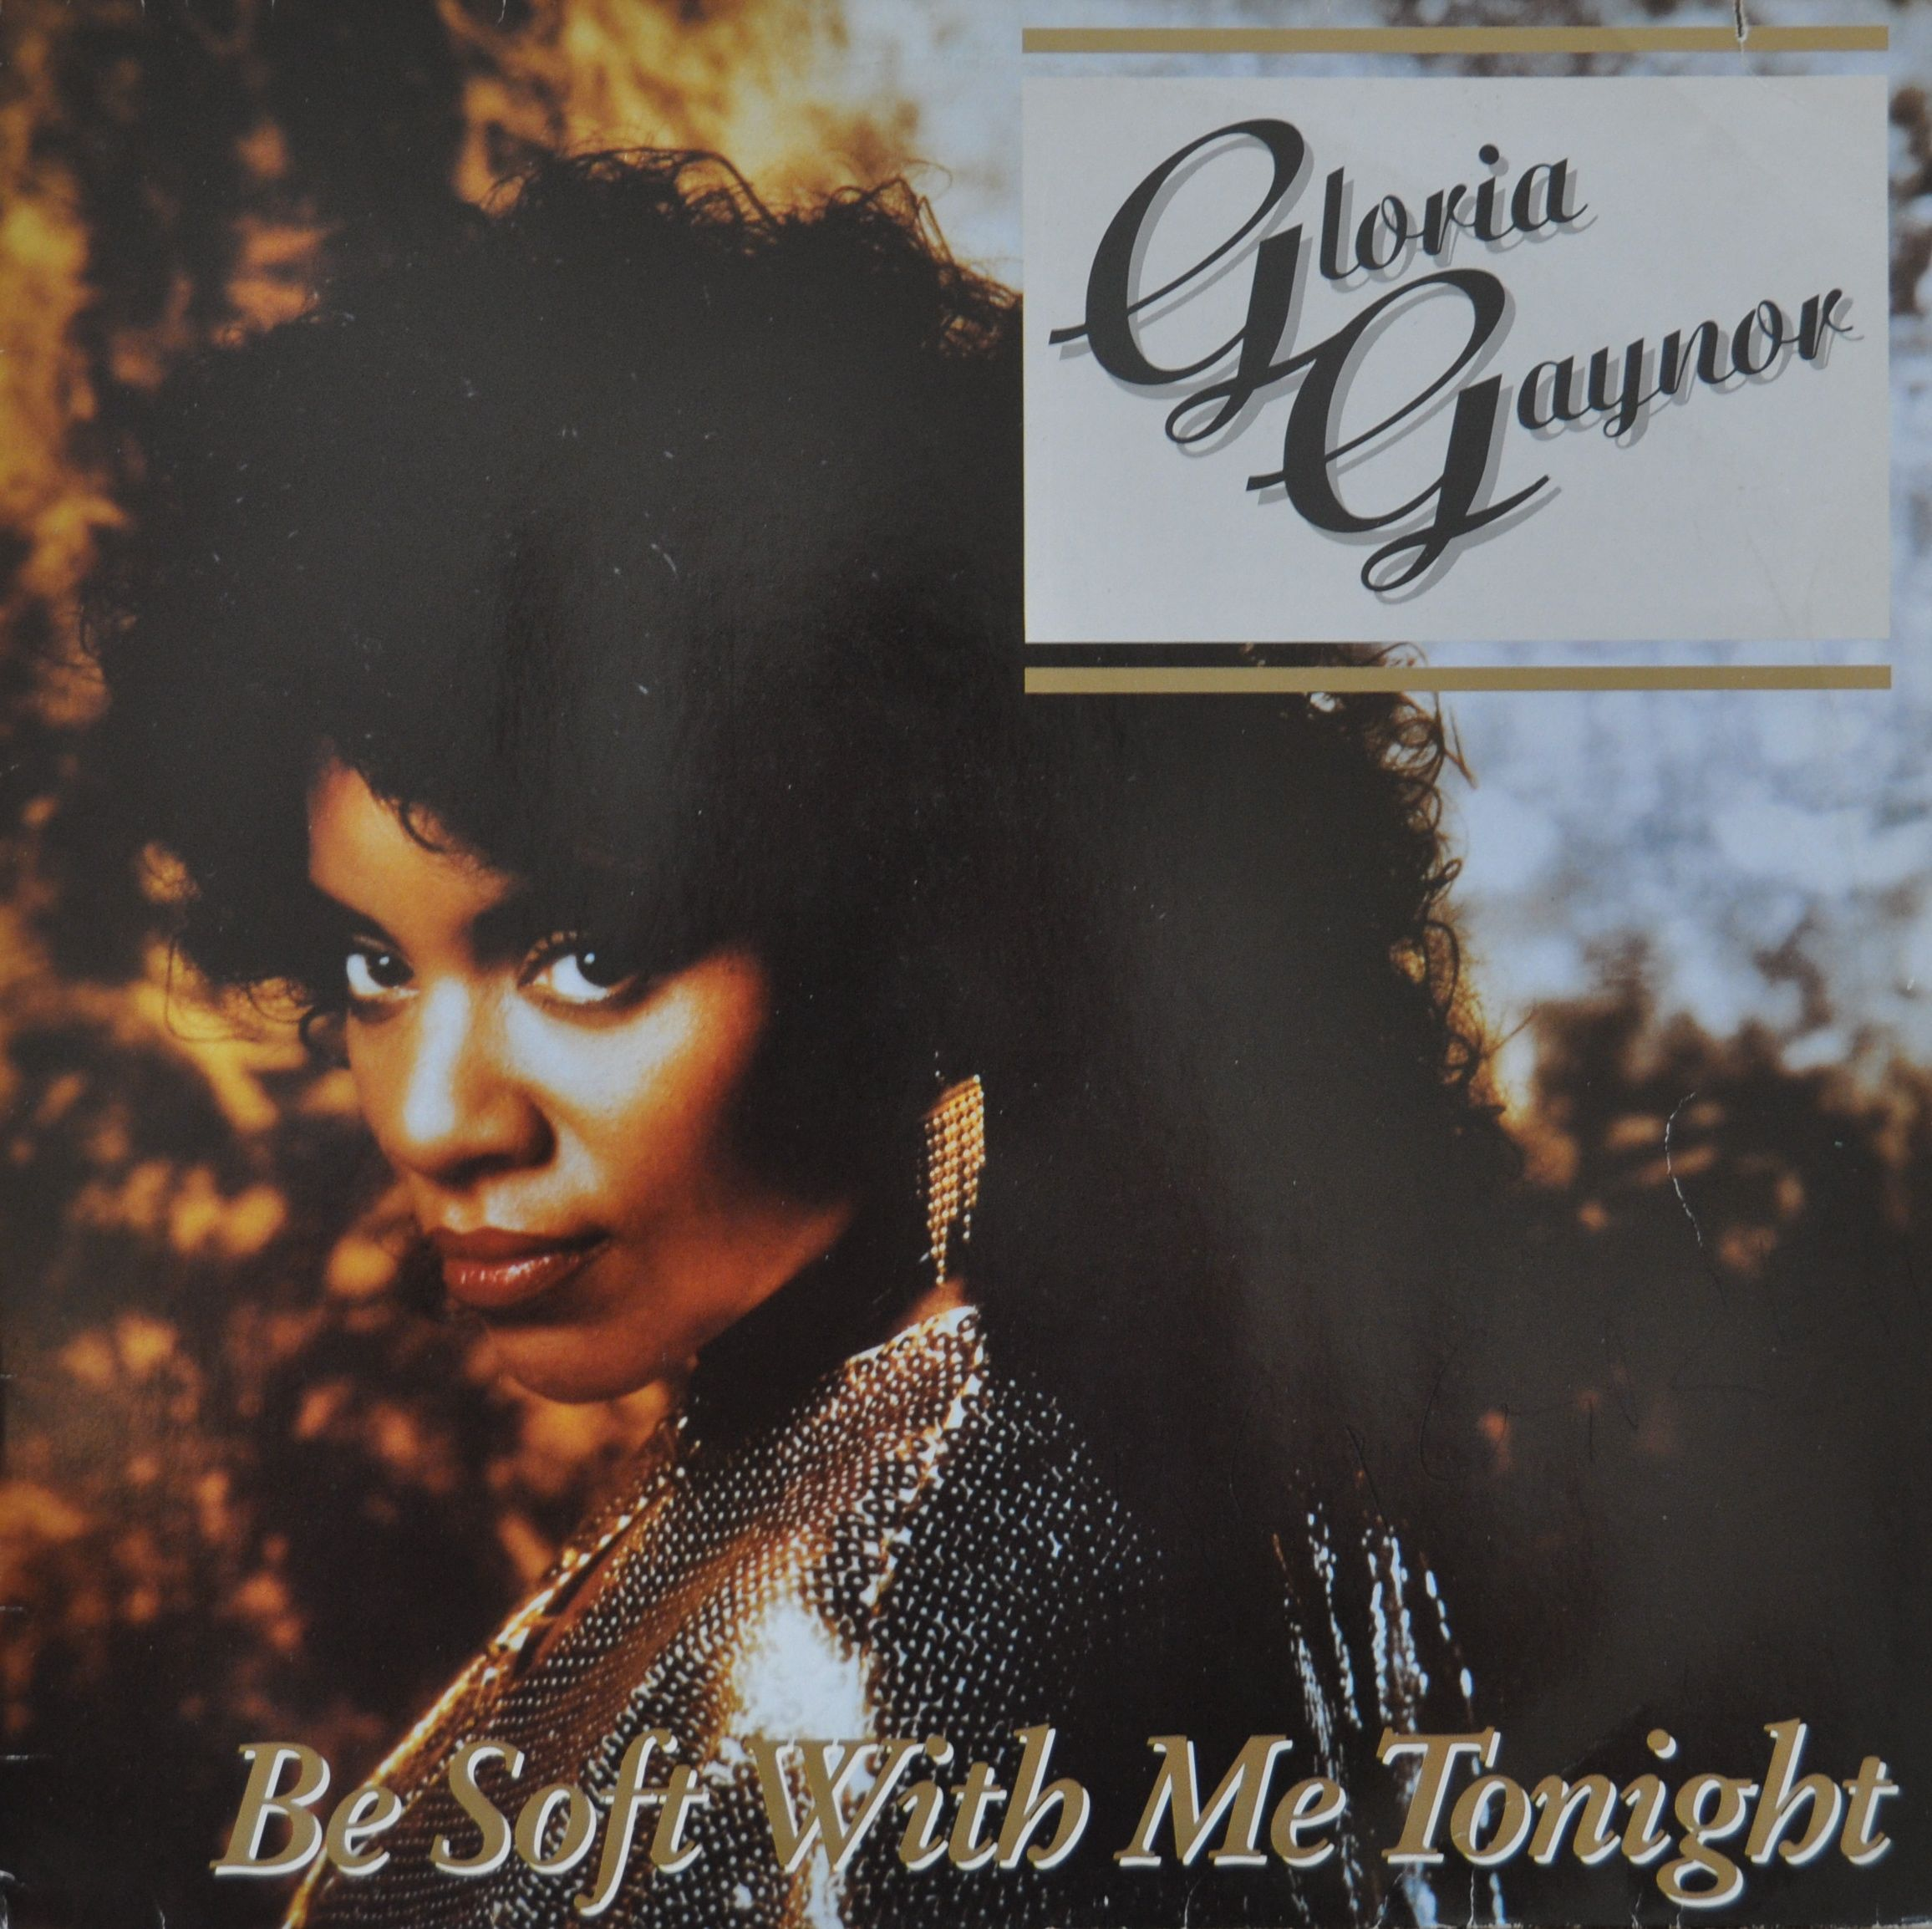 jaquettes2/Gloria-Gaynor_Be-soft-with-me-tonight.jpg